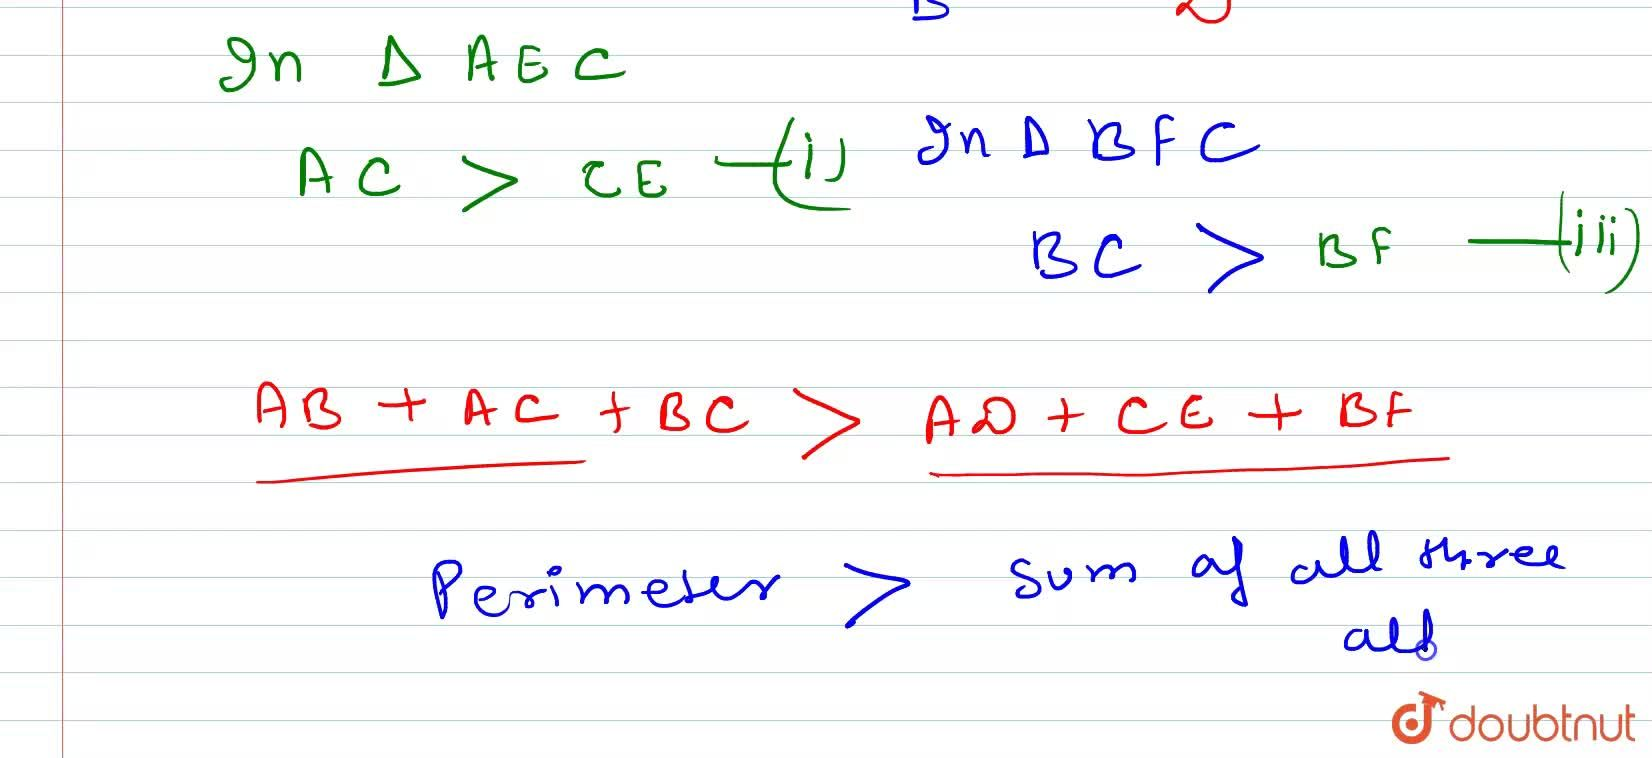 Prove that the perimeter of any triangle is greater than the sum of three altitudes.